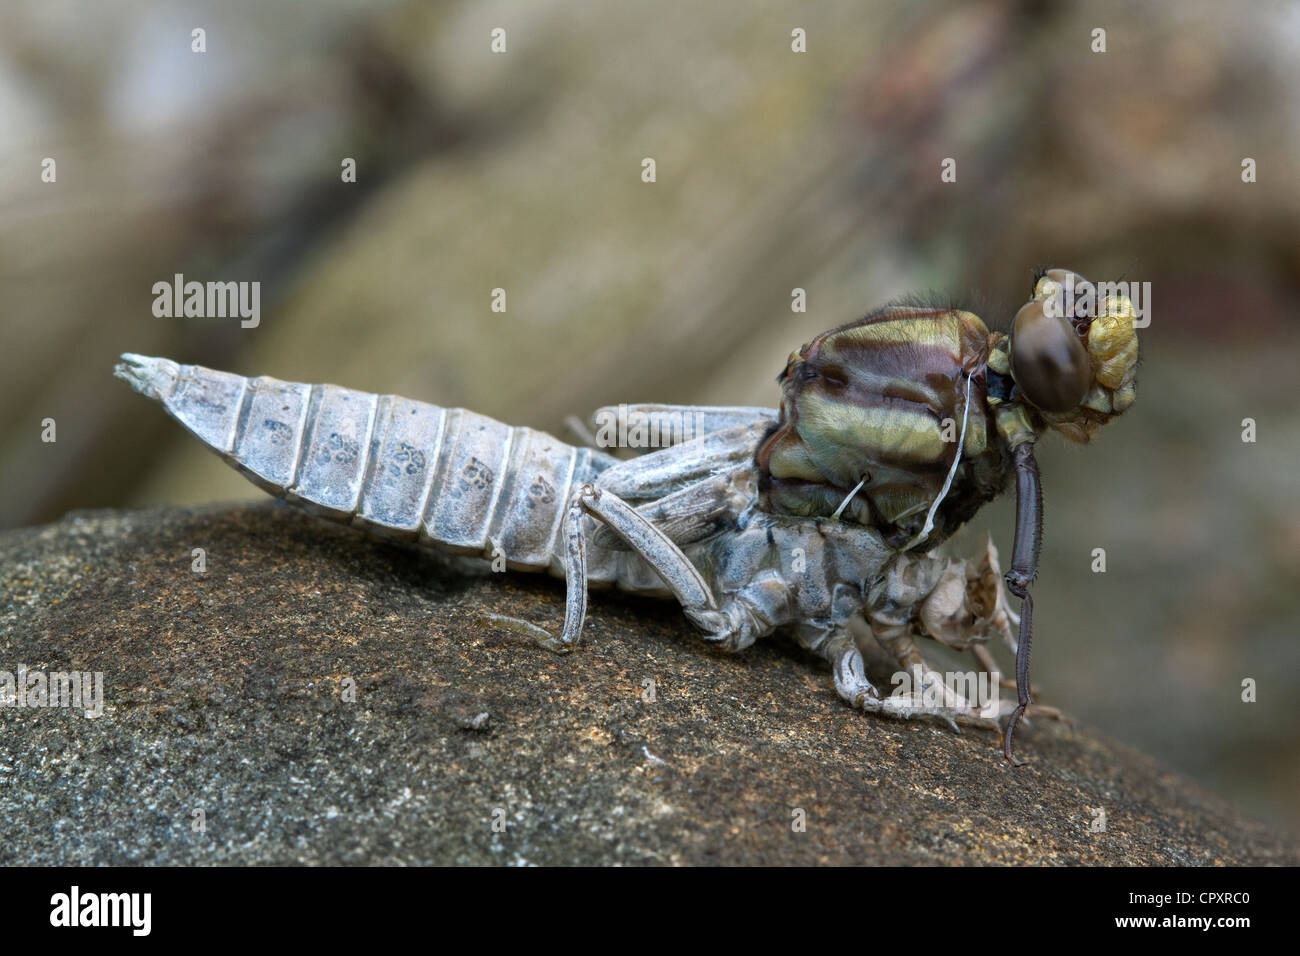 Metamorphosis, Dragonfly adult emerging from nymphal skin Eastern USA - Stock Image